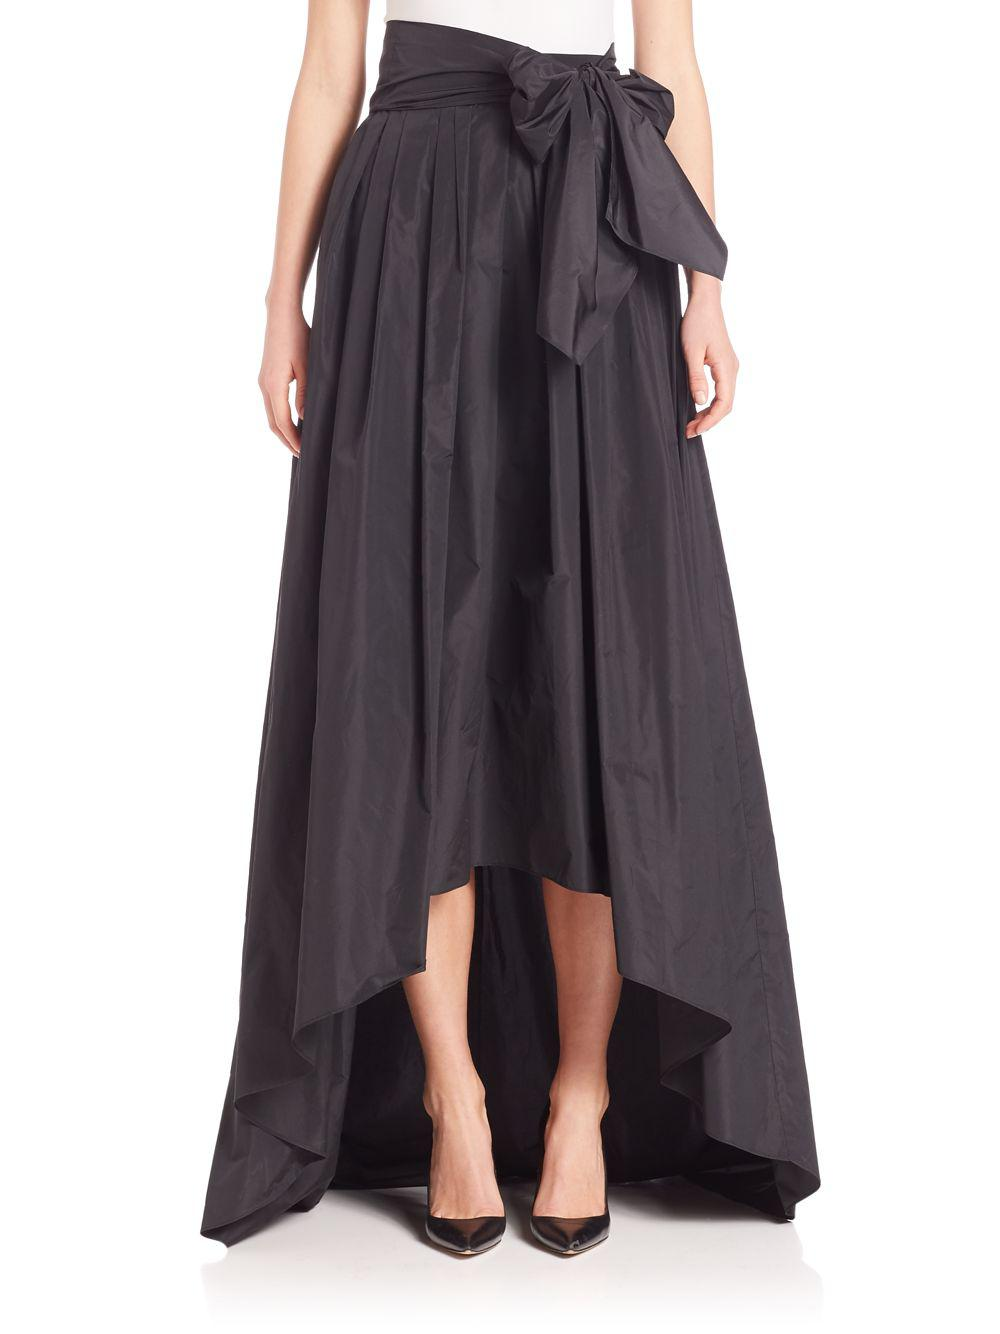 Lyst - Escada Hi-lo Taffeta Ball Gown Skirt in Black